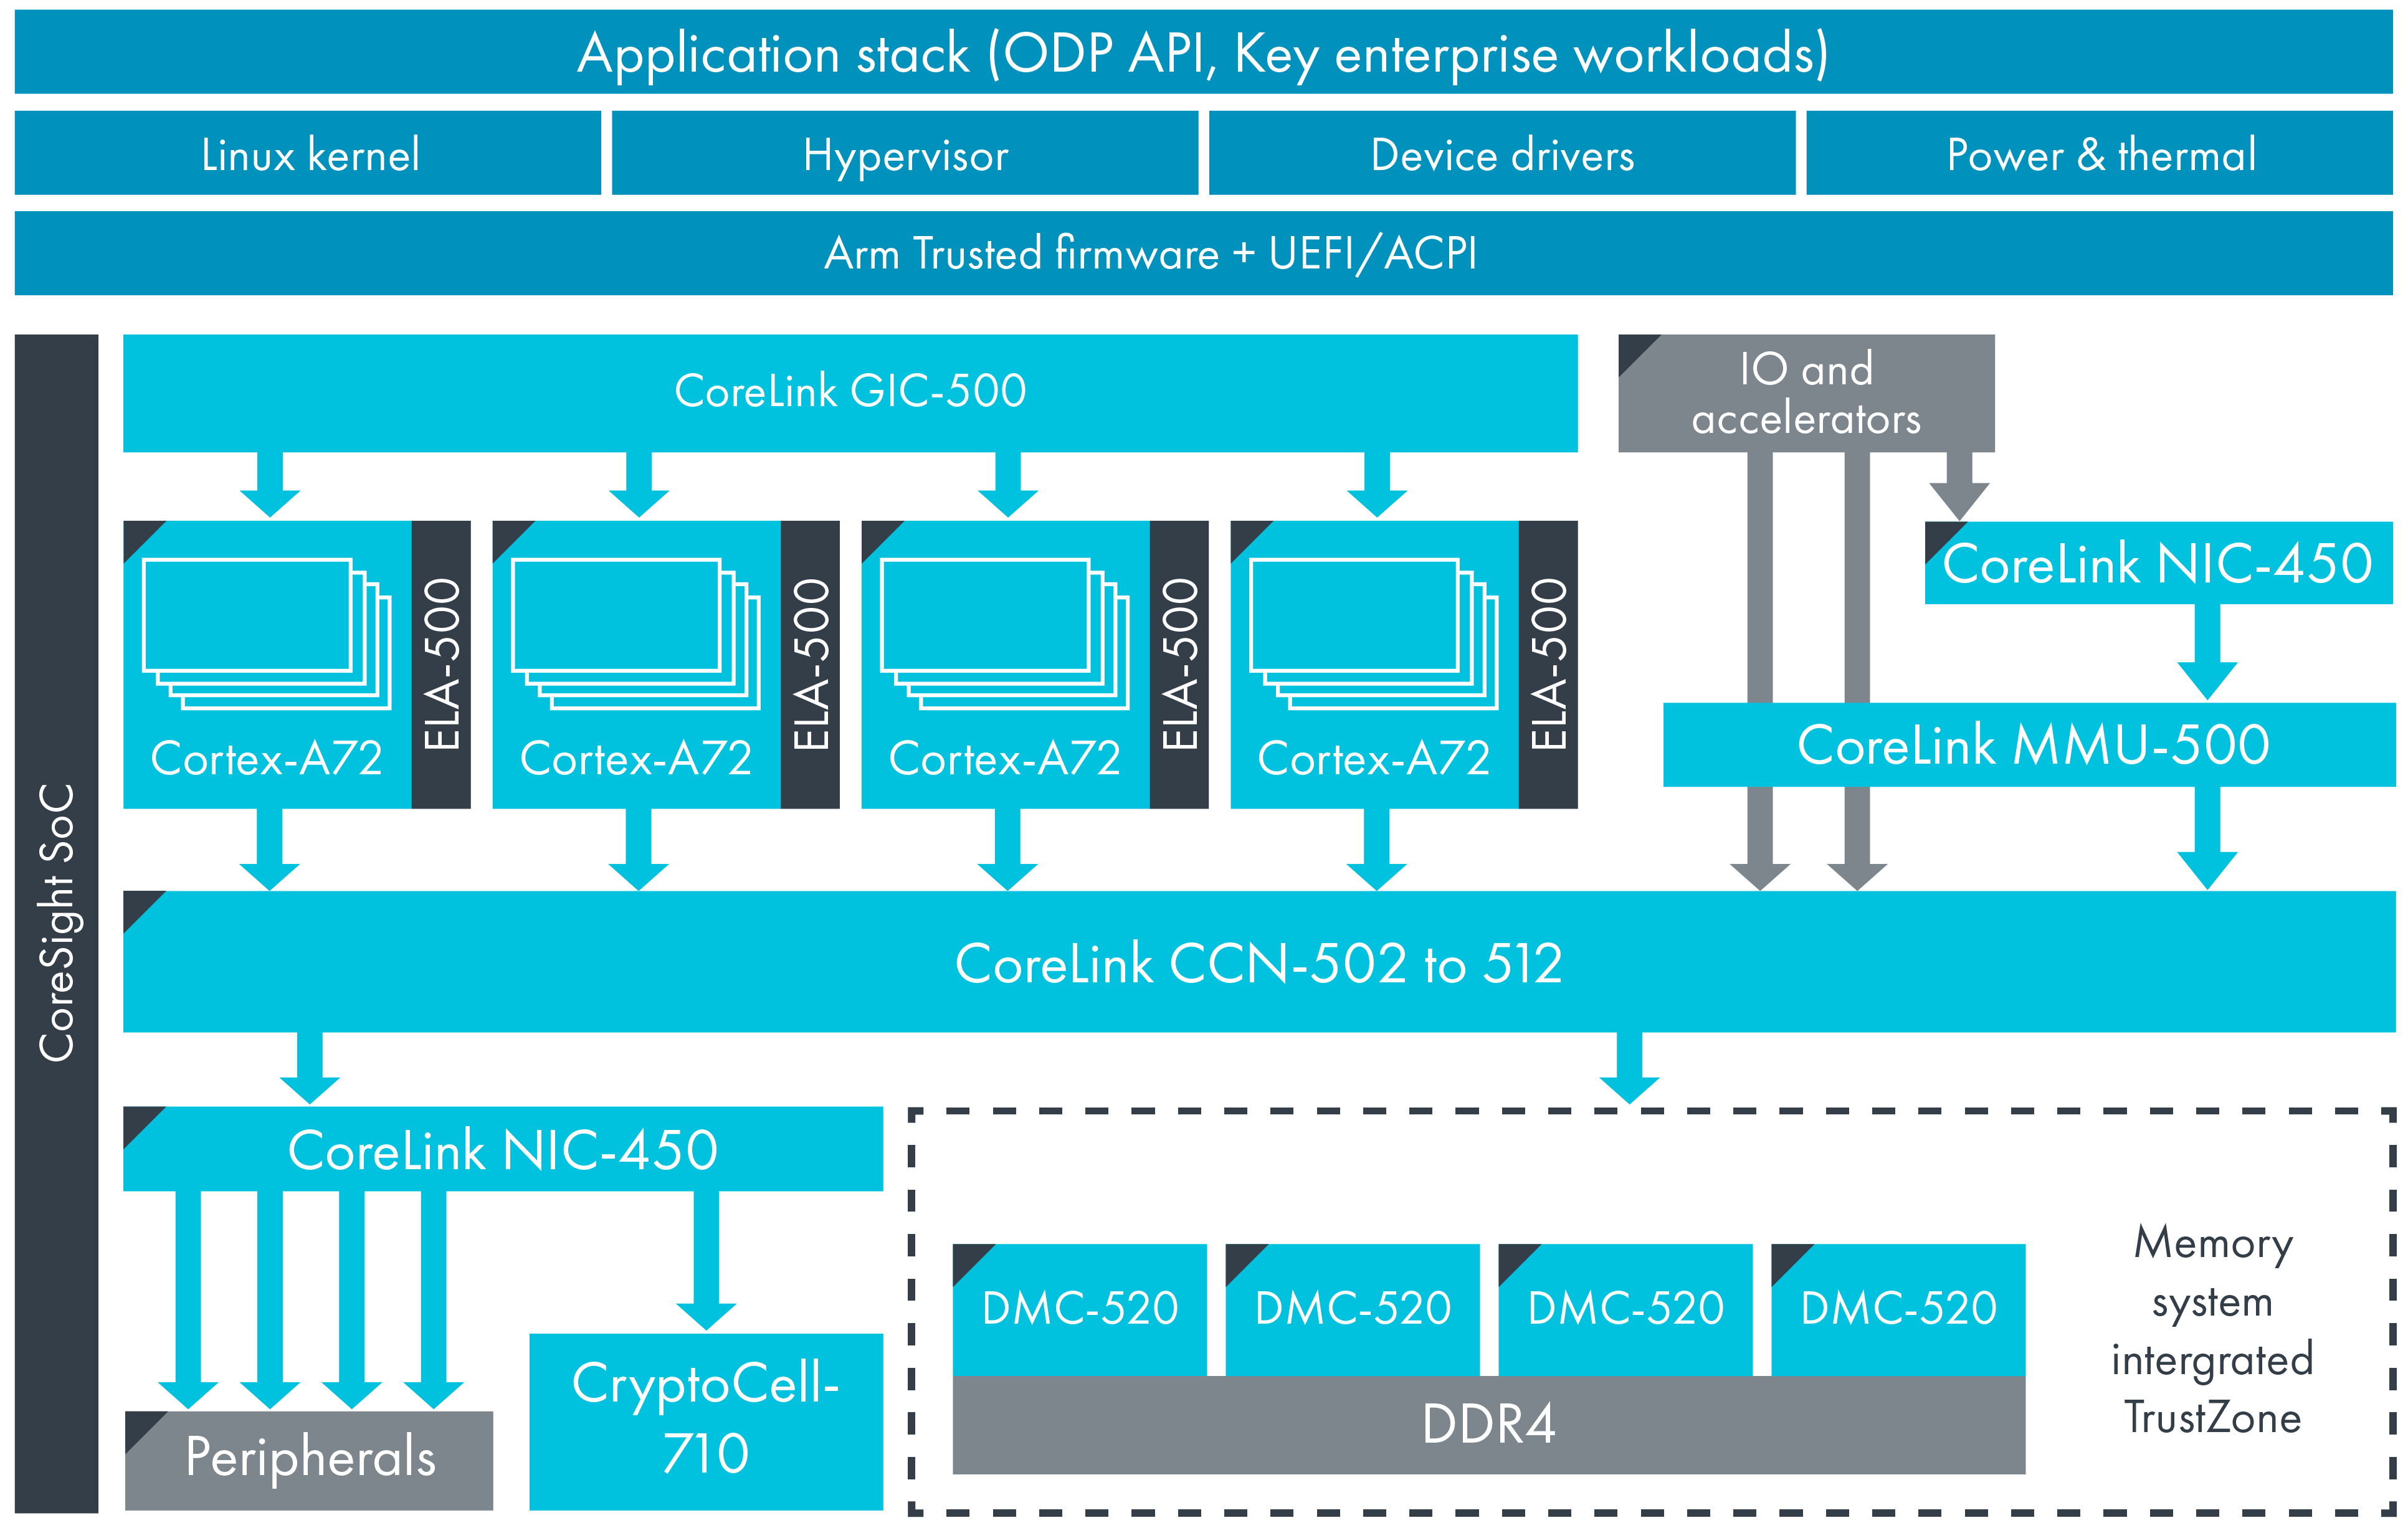 Diagram on enterprise for CCN502 to 512.